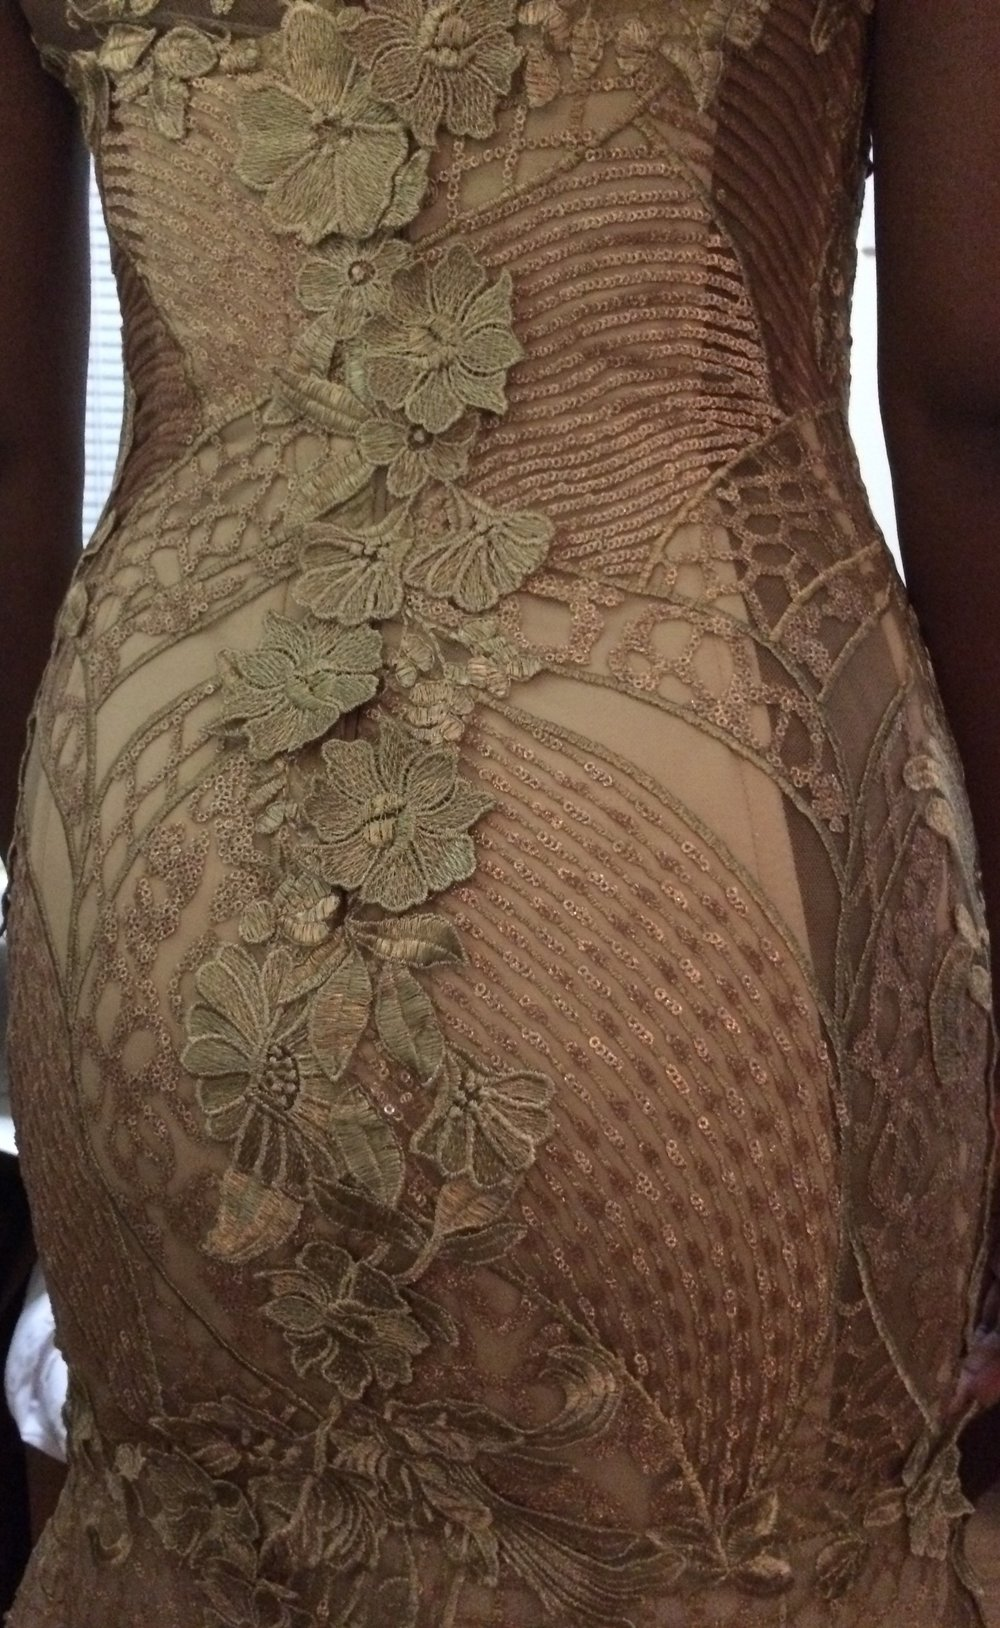 Back view of lace applique, boned, trumpet silhouette, wedding gown